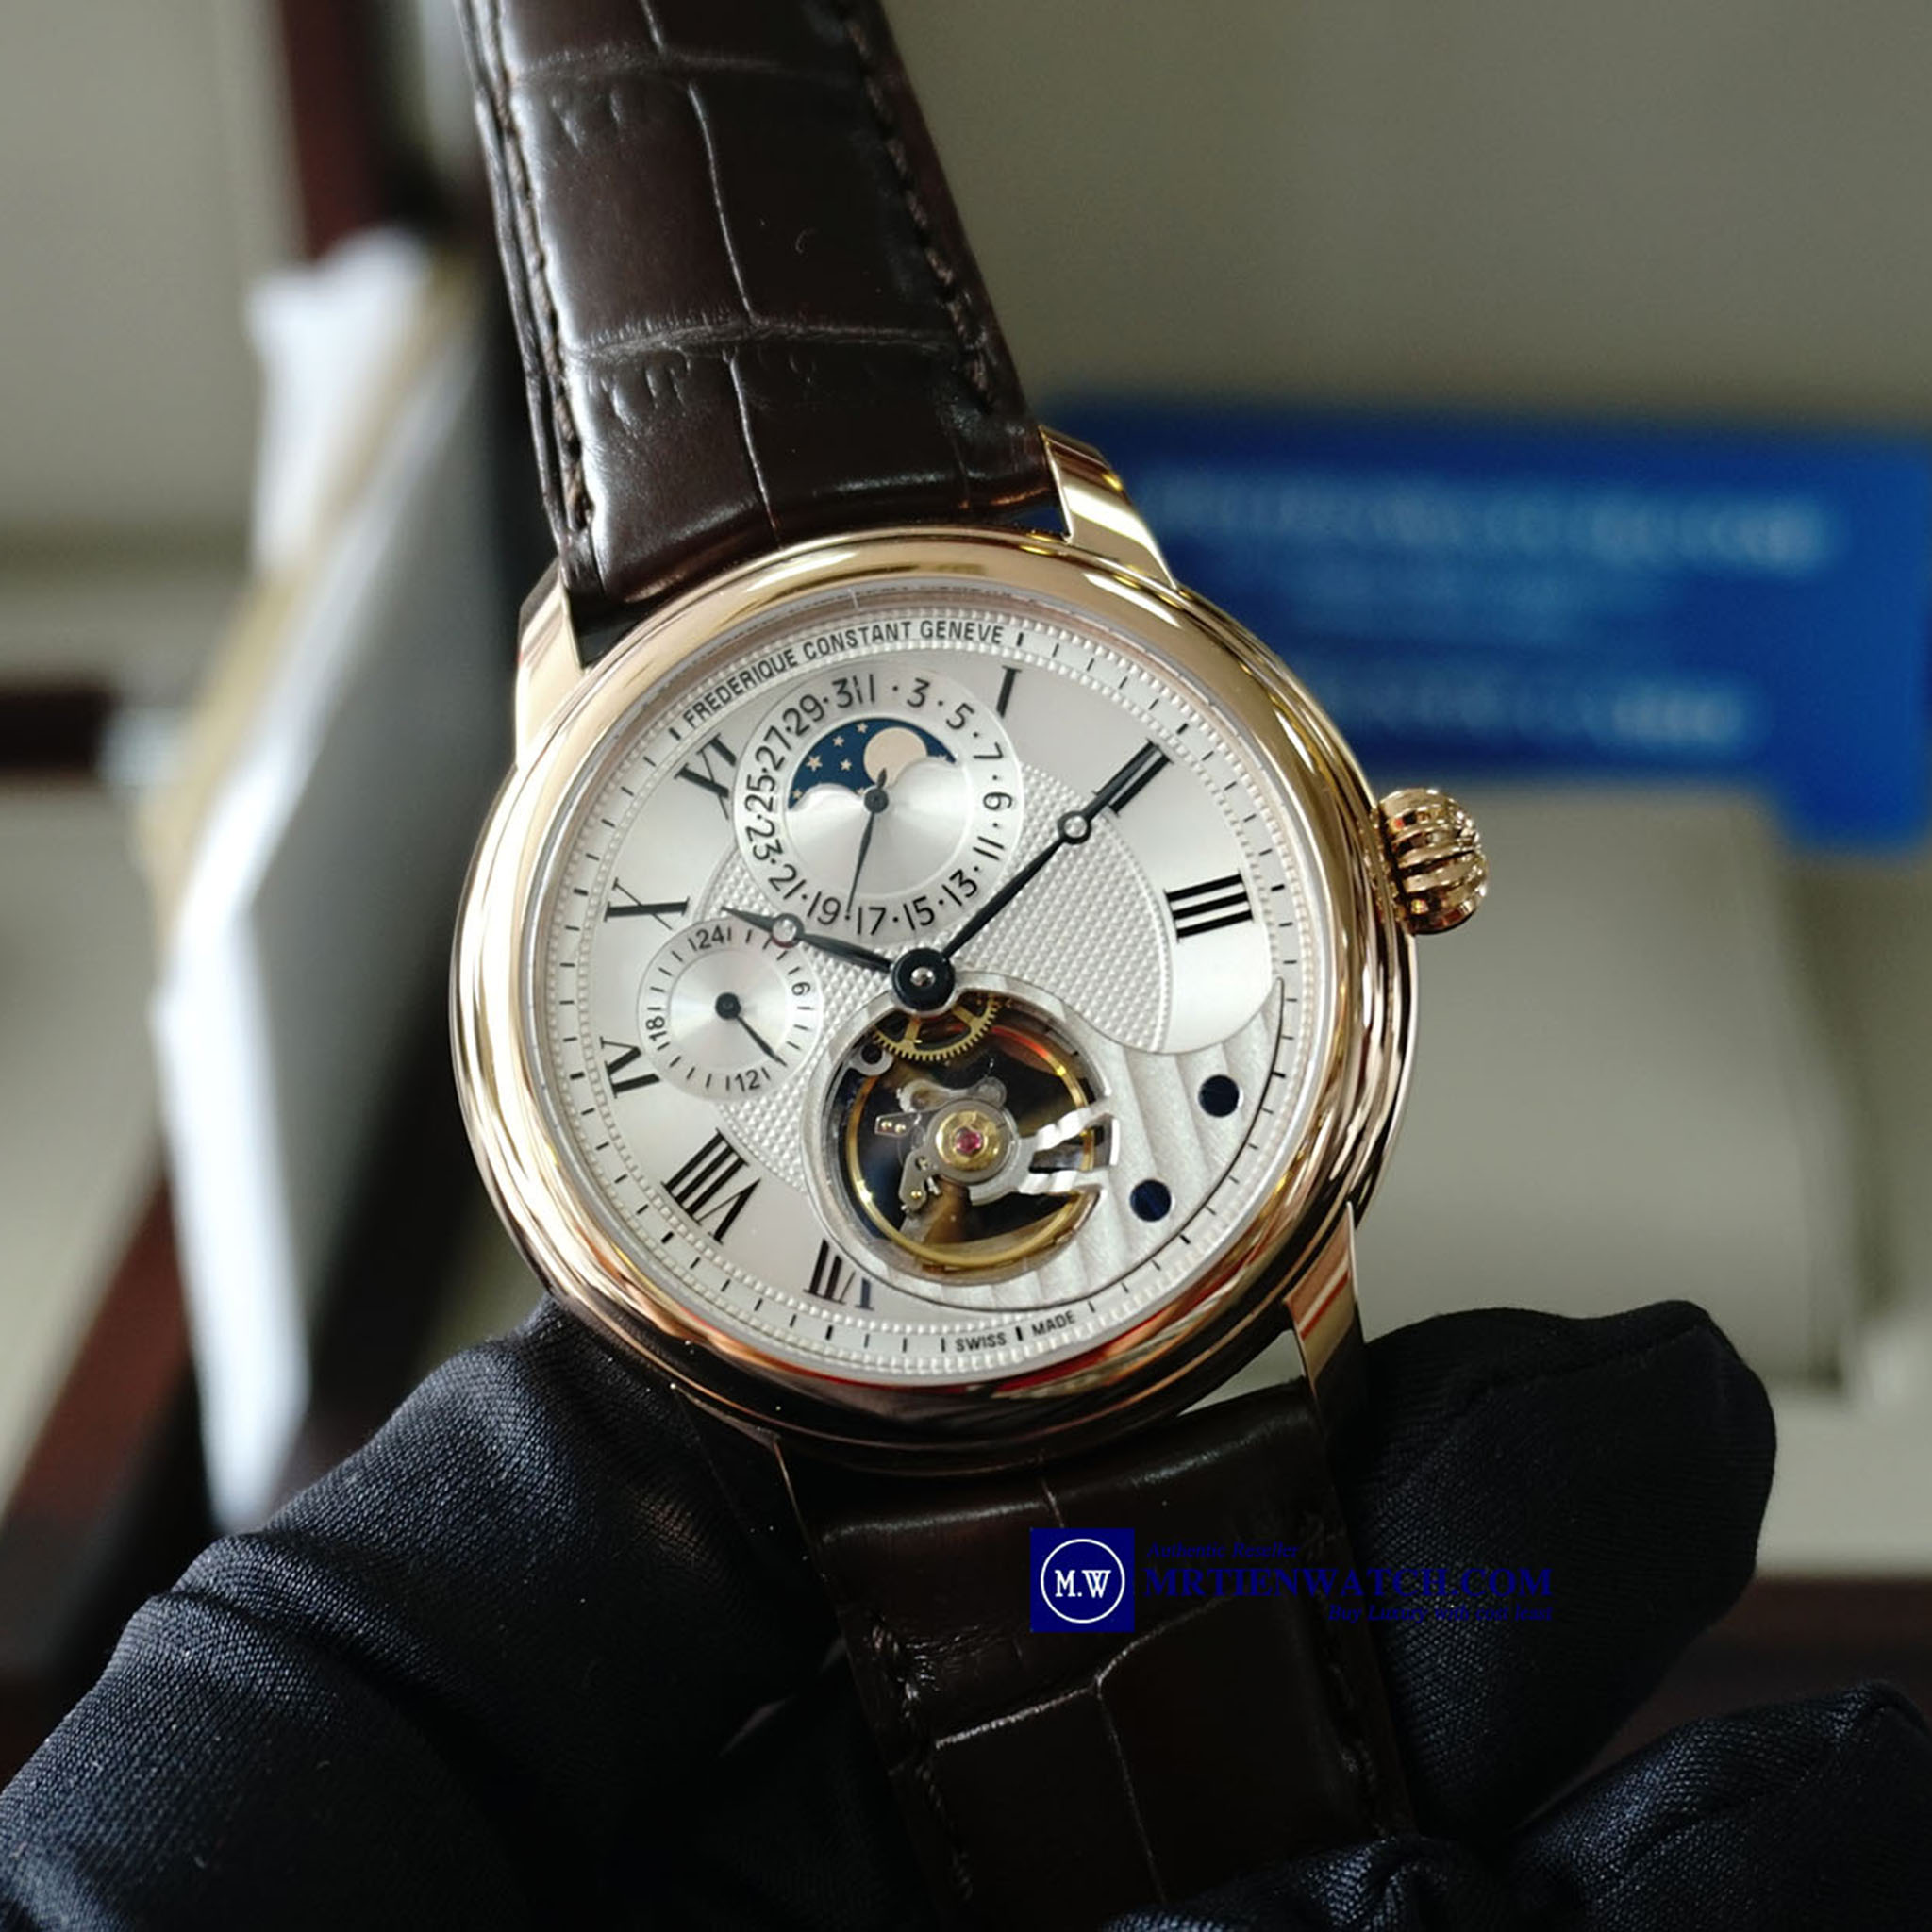 FREDERIQUE CONSTANT MANUFACTURE HEART BEAT 18K SOLID ROSE GOLD FC-945MC4H9 Moonphase Seri 9 Phiên bản giới hạn 888 chiếc